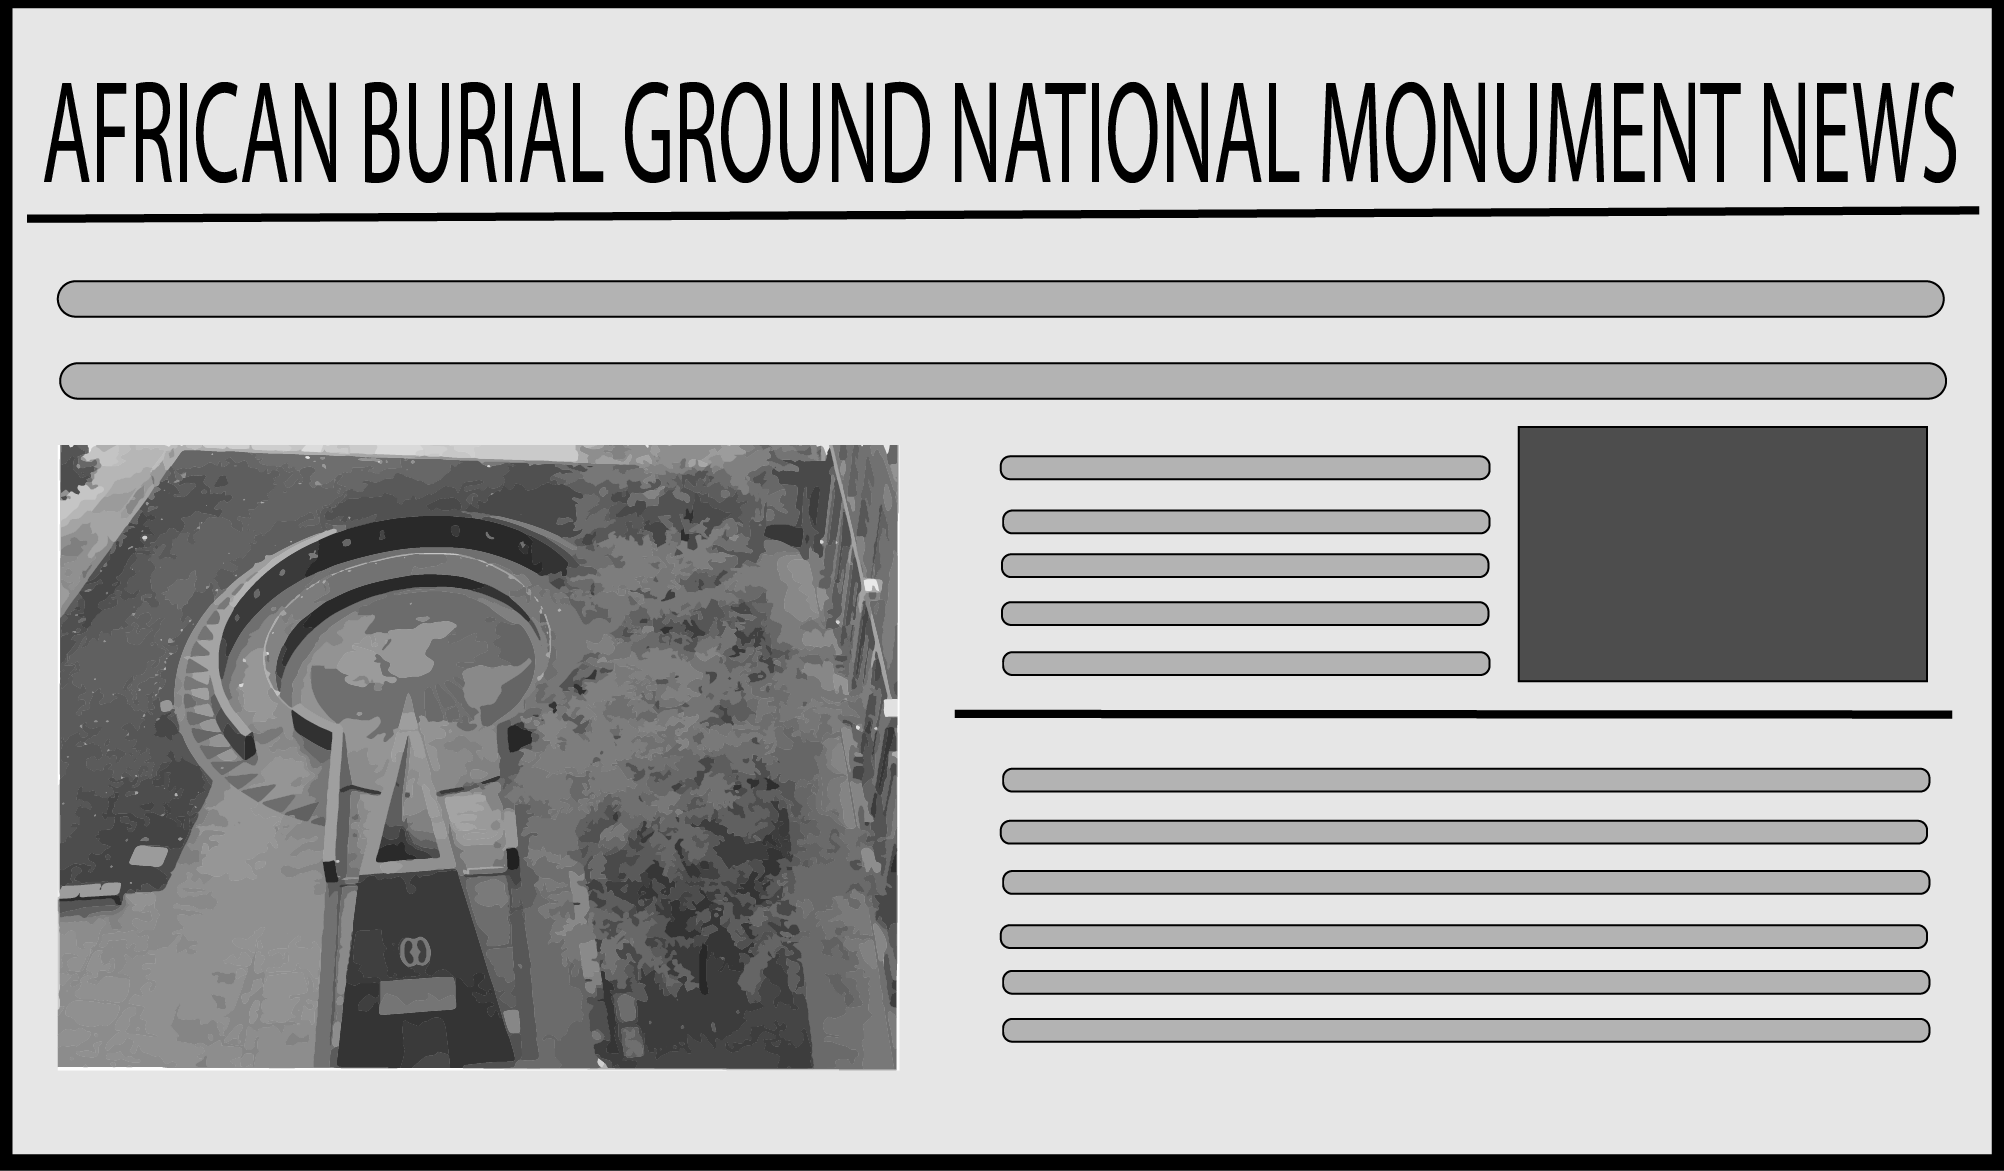 African Burial Ground Breaking News